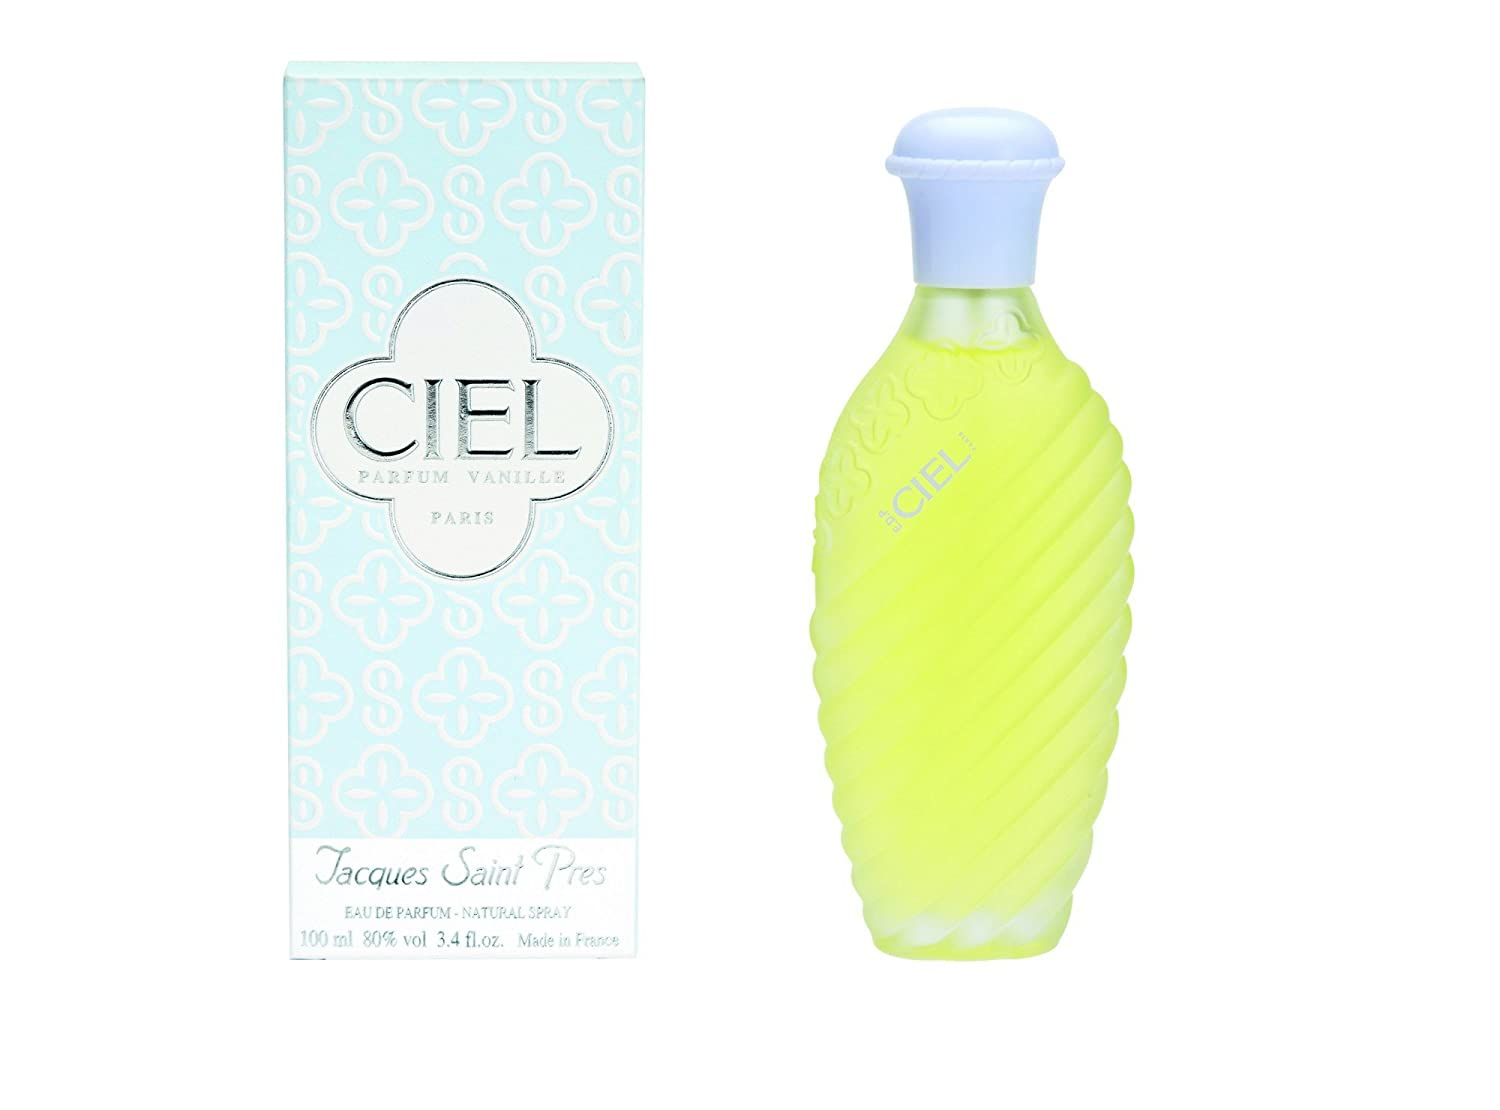 Amazon.com : Ciel By Jacques Saint Pres For Women Eau De Parfum Spray, 3.4-Ounces : Colonia Ciel : Beauty